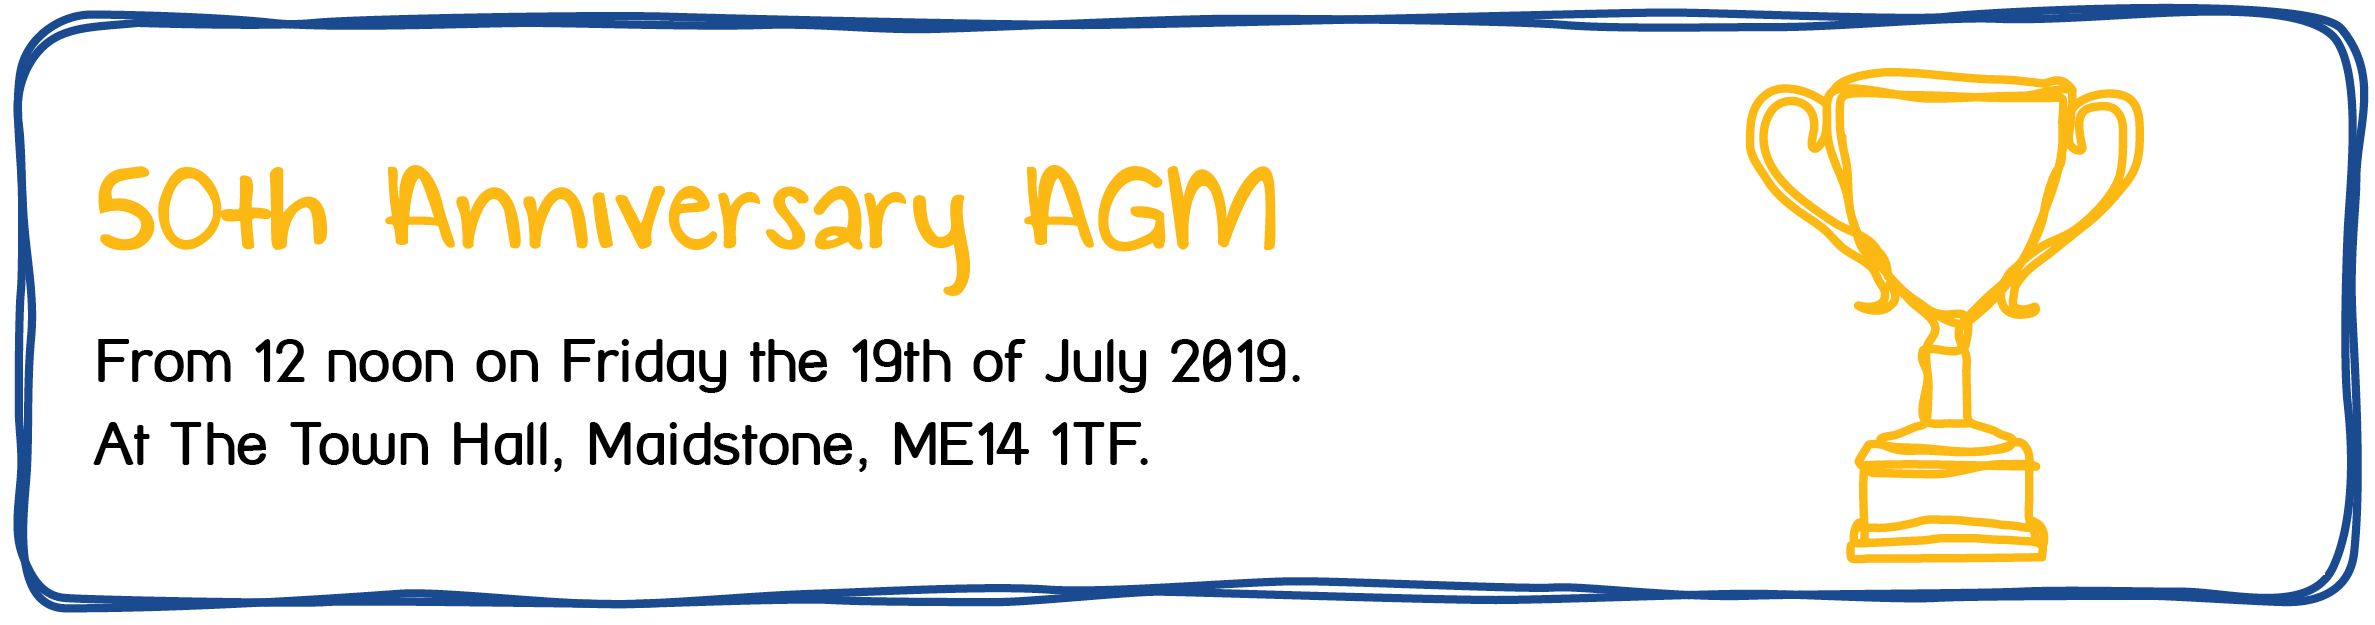 Maidstone and Mid-Kent Mind's 50th Anniversary AGM - From 12 noon on Friday the 19th of July 2019. At the Town Hall, Maidstone, ME14 1TF.